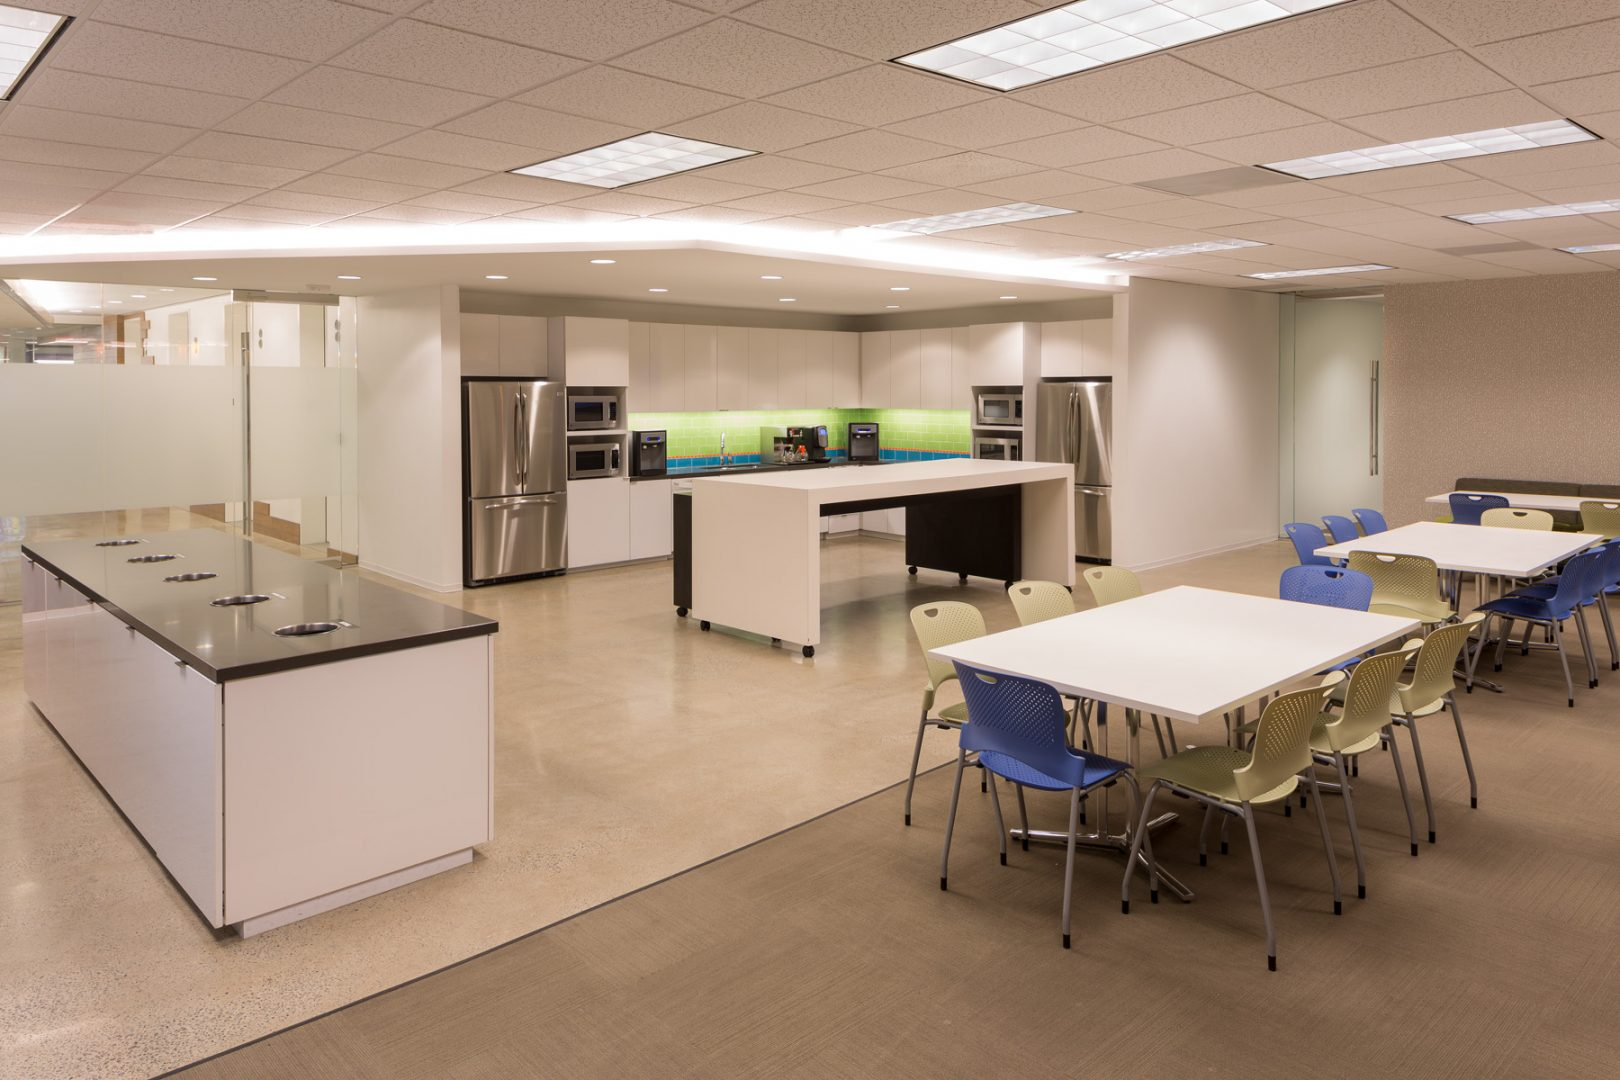 Corporate Interior Design Wood Mackenzie Houston Breakroom Mobile Island